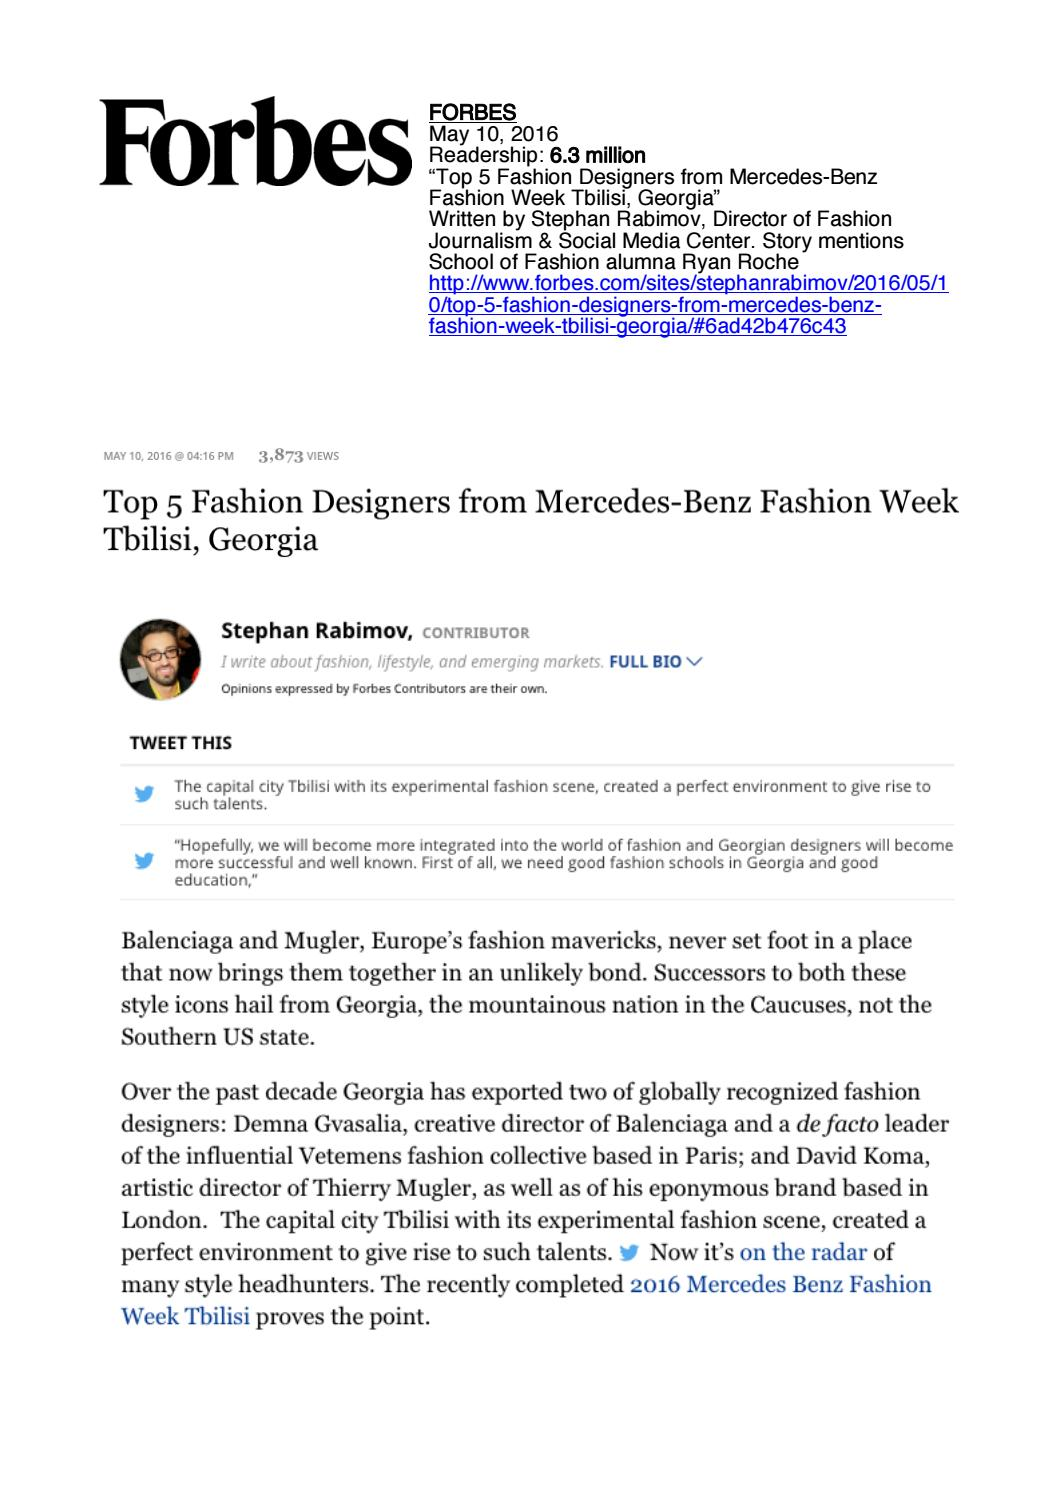 05 10 2016 Forbes by Academy Of Art University School of Fashion - issuu